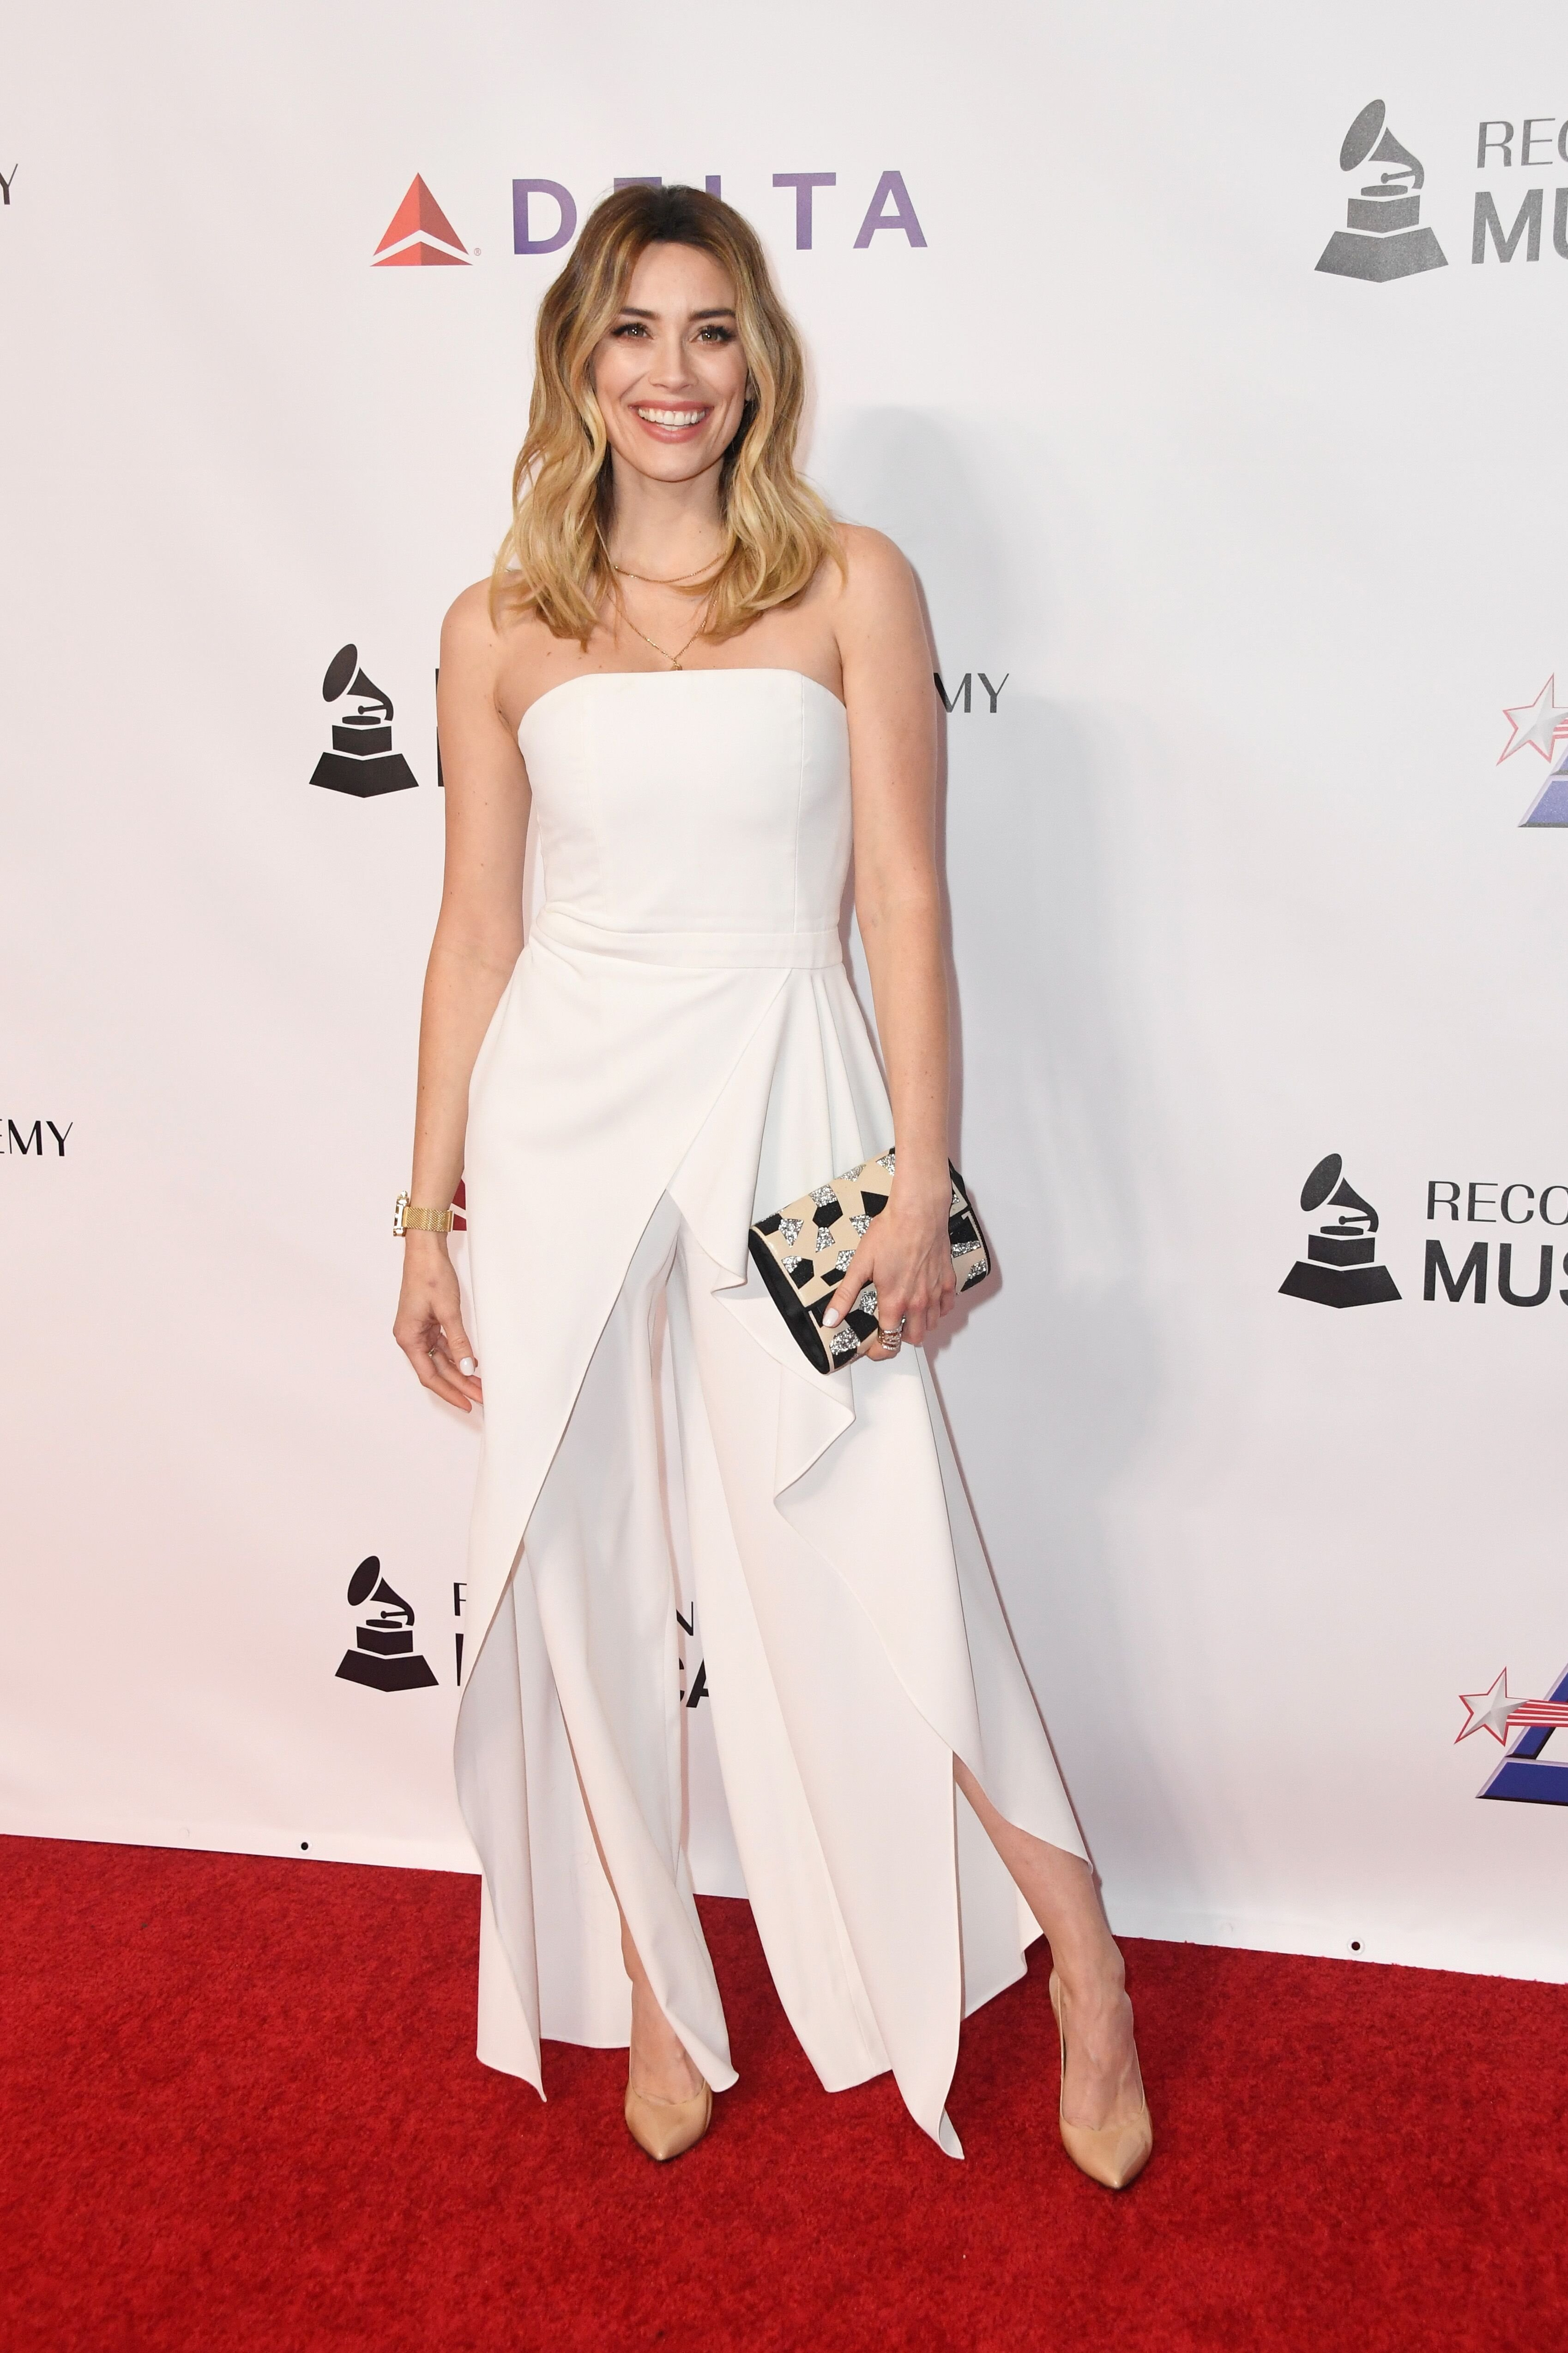 Arielle Vandenberg at THE MusiCares Person of the Year EVENT honoring Dolly Parton in 2019 in Los Angeles | Source: Getty Images